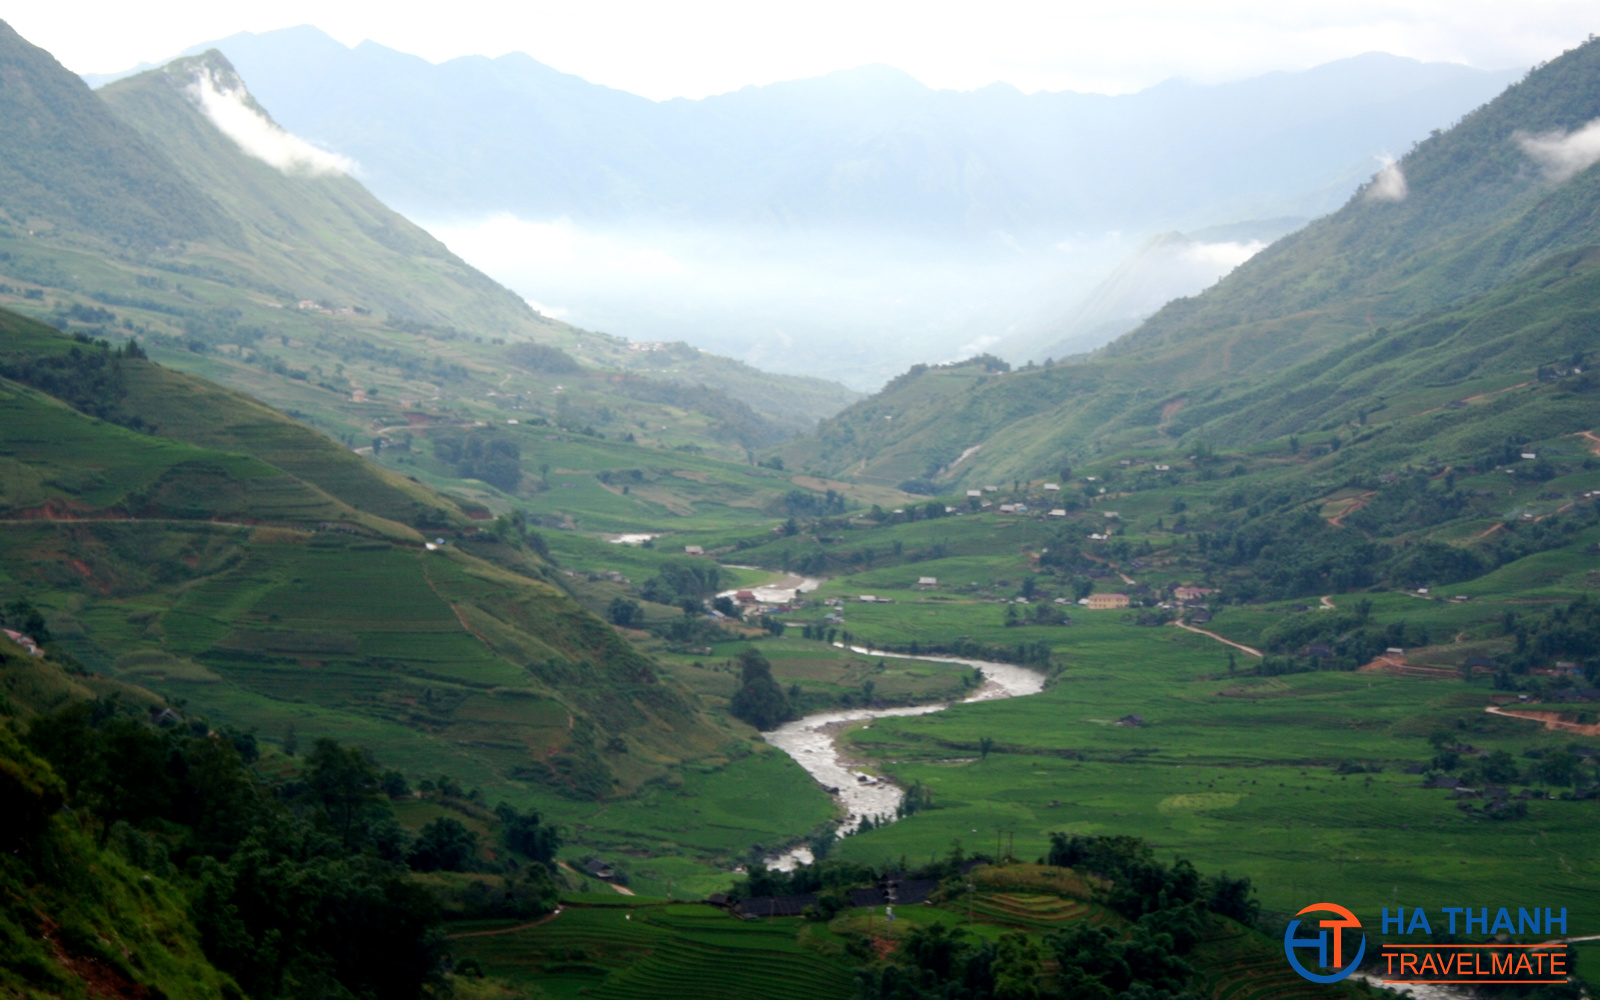 Sapa Valley Trekking 2 days/1 night Tour – Hotel